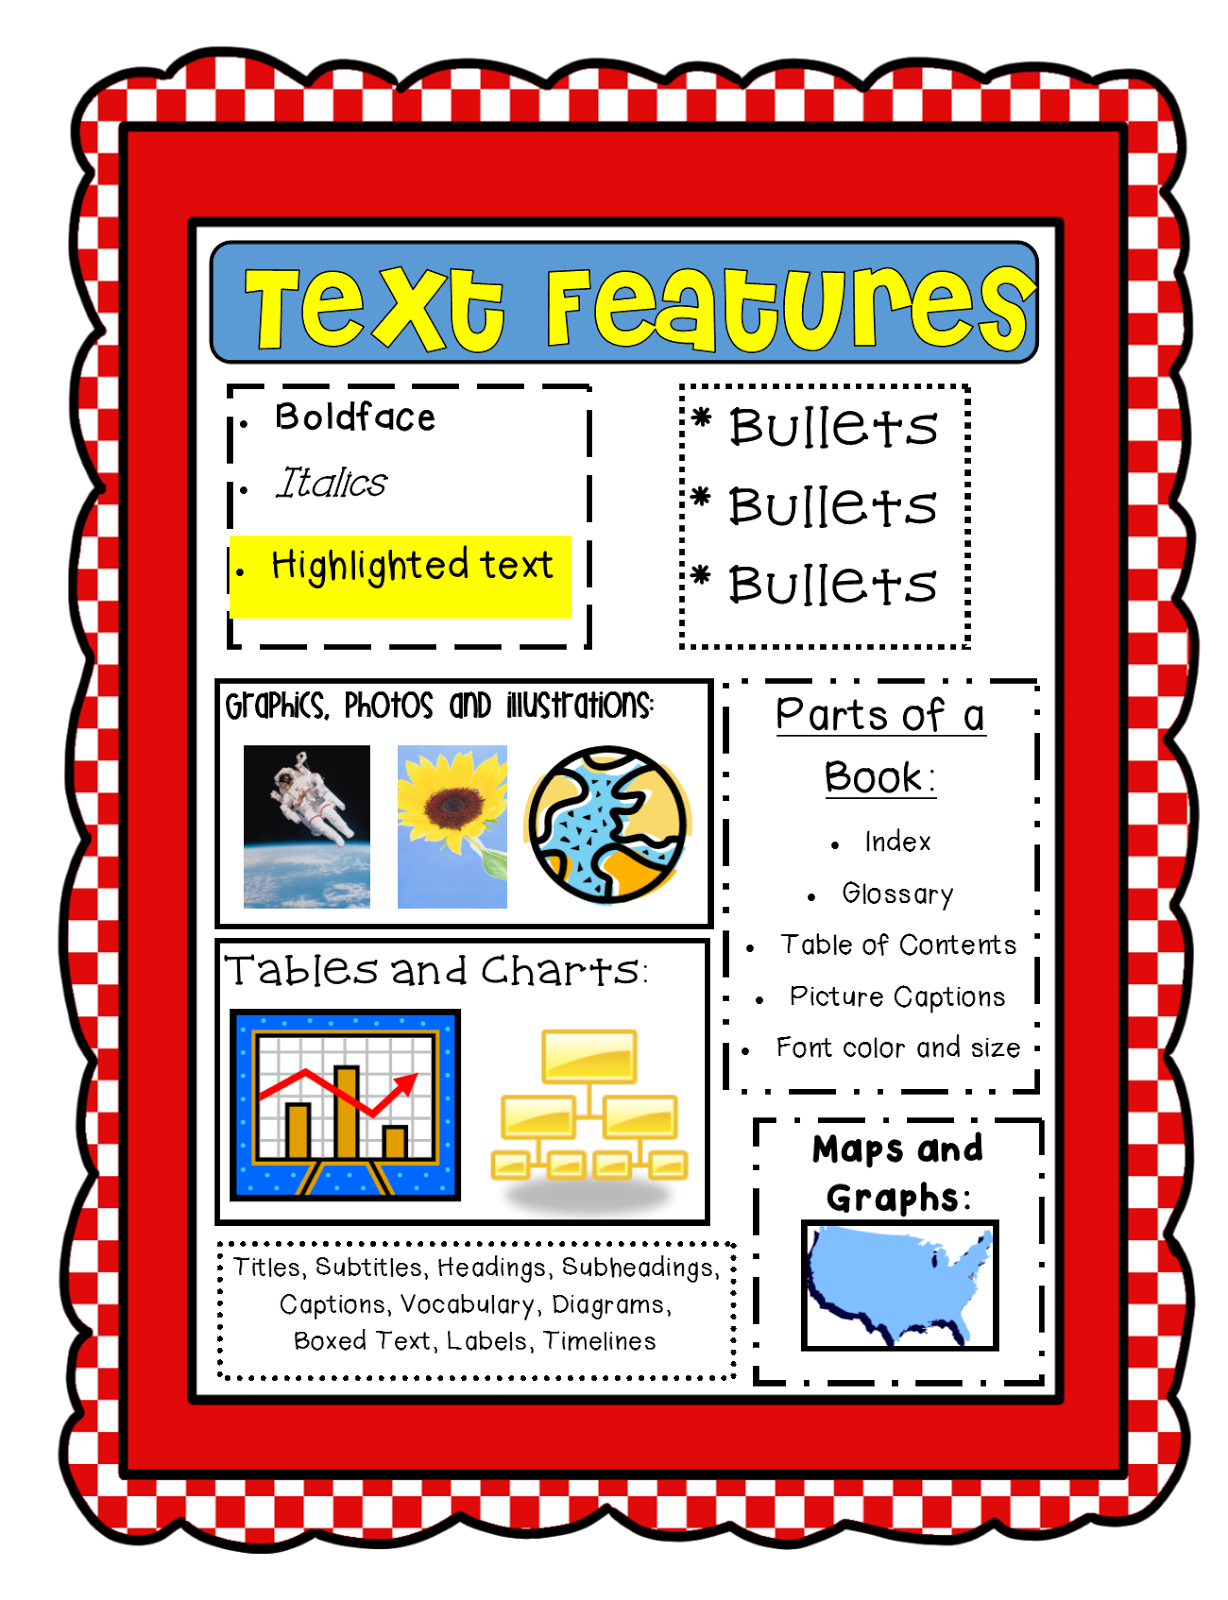 Pictures of text features clipart images gallery for free.